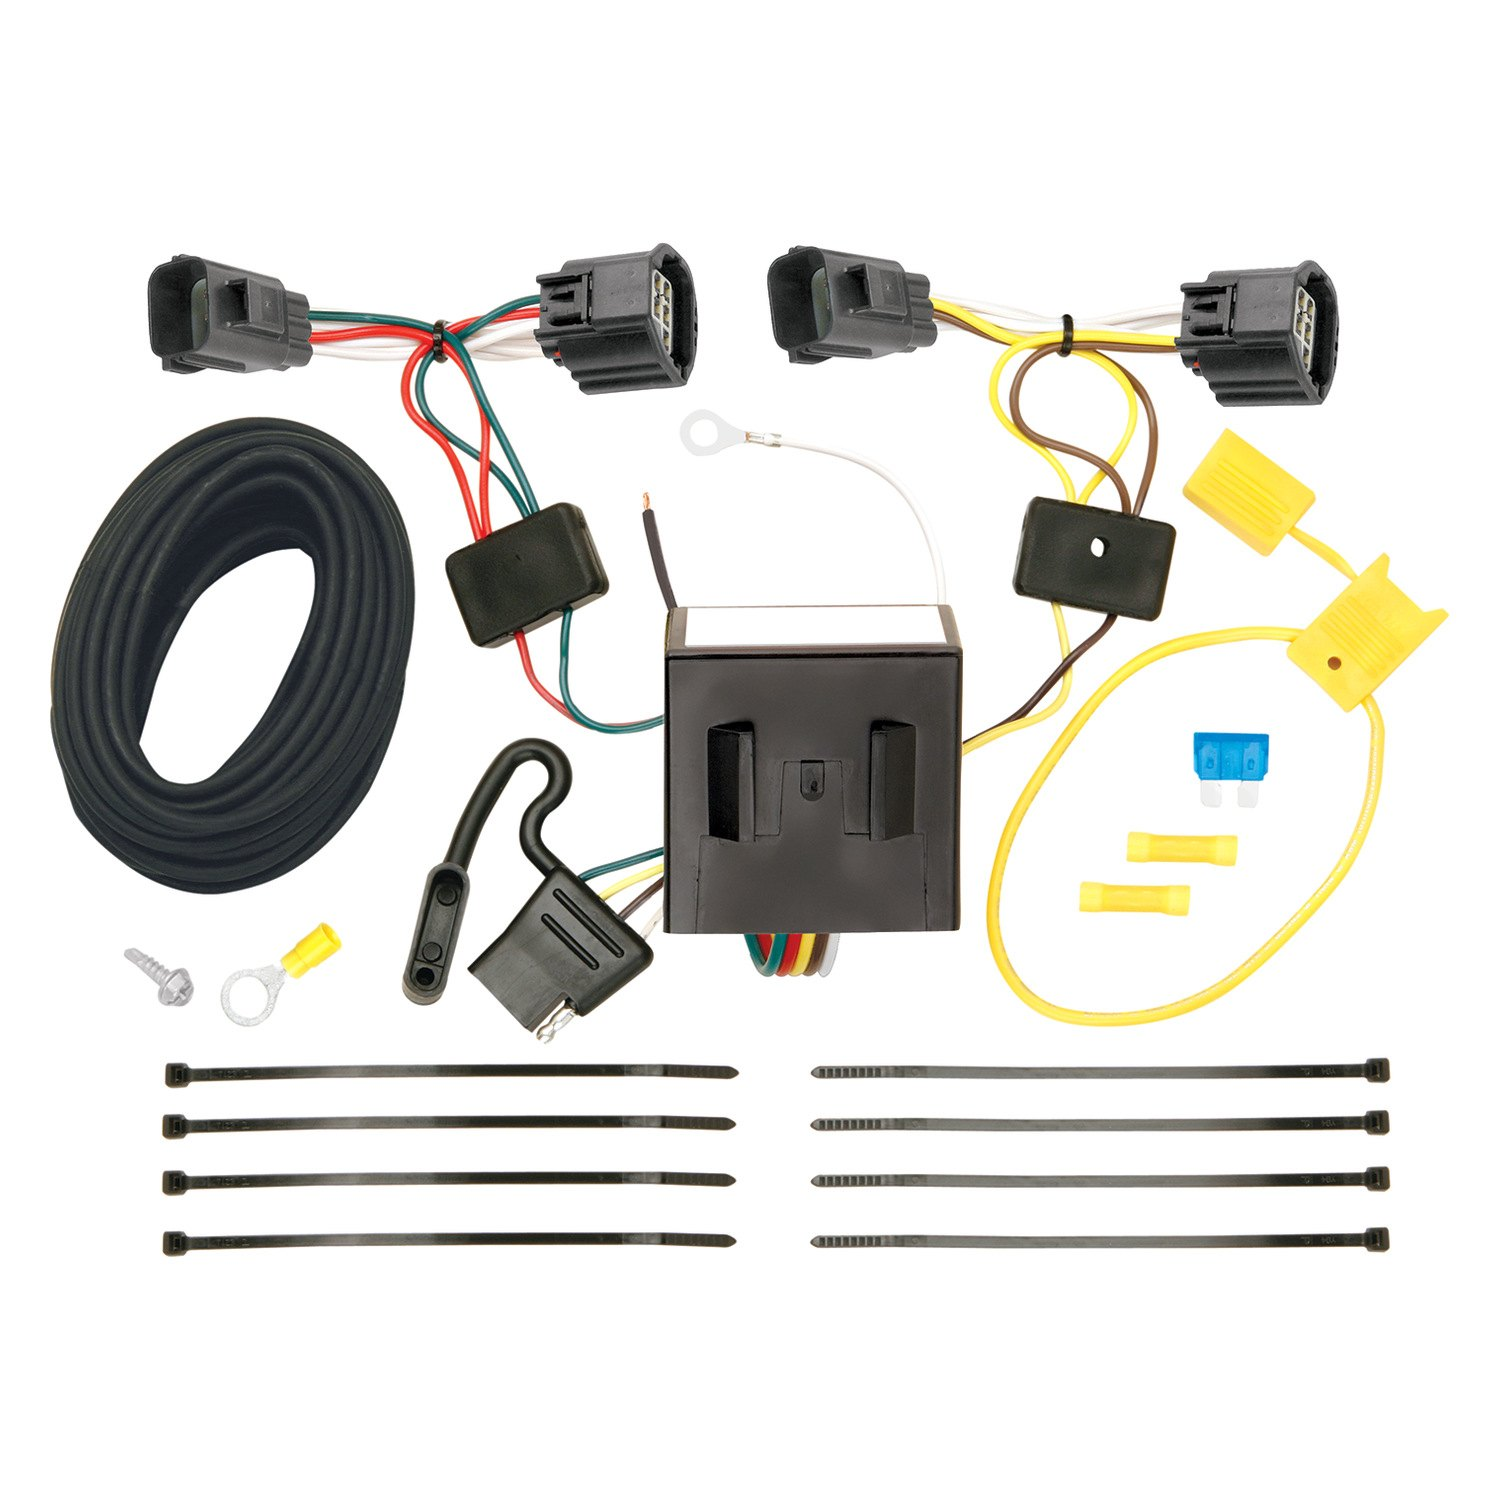 Wiring Harness For Trailer Diagram : Trailer hitches wiring harness get free image